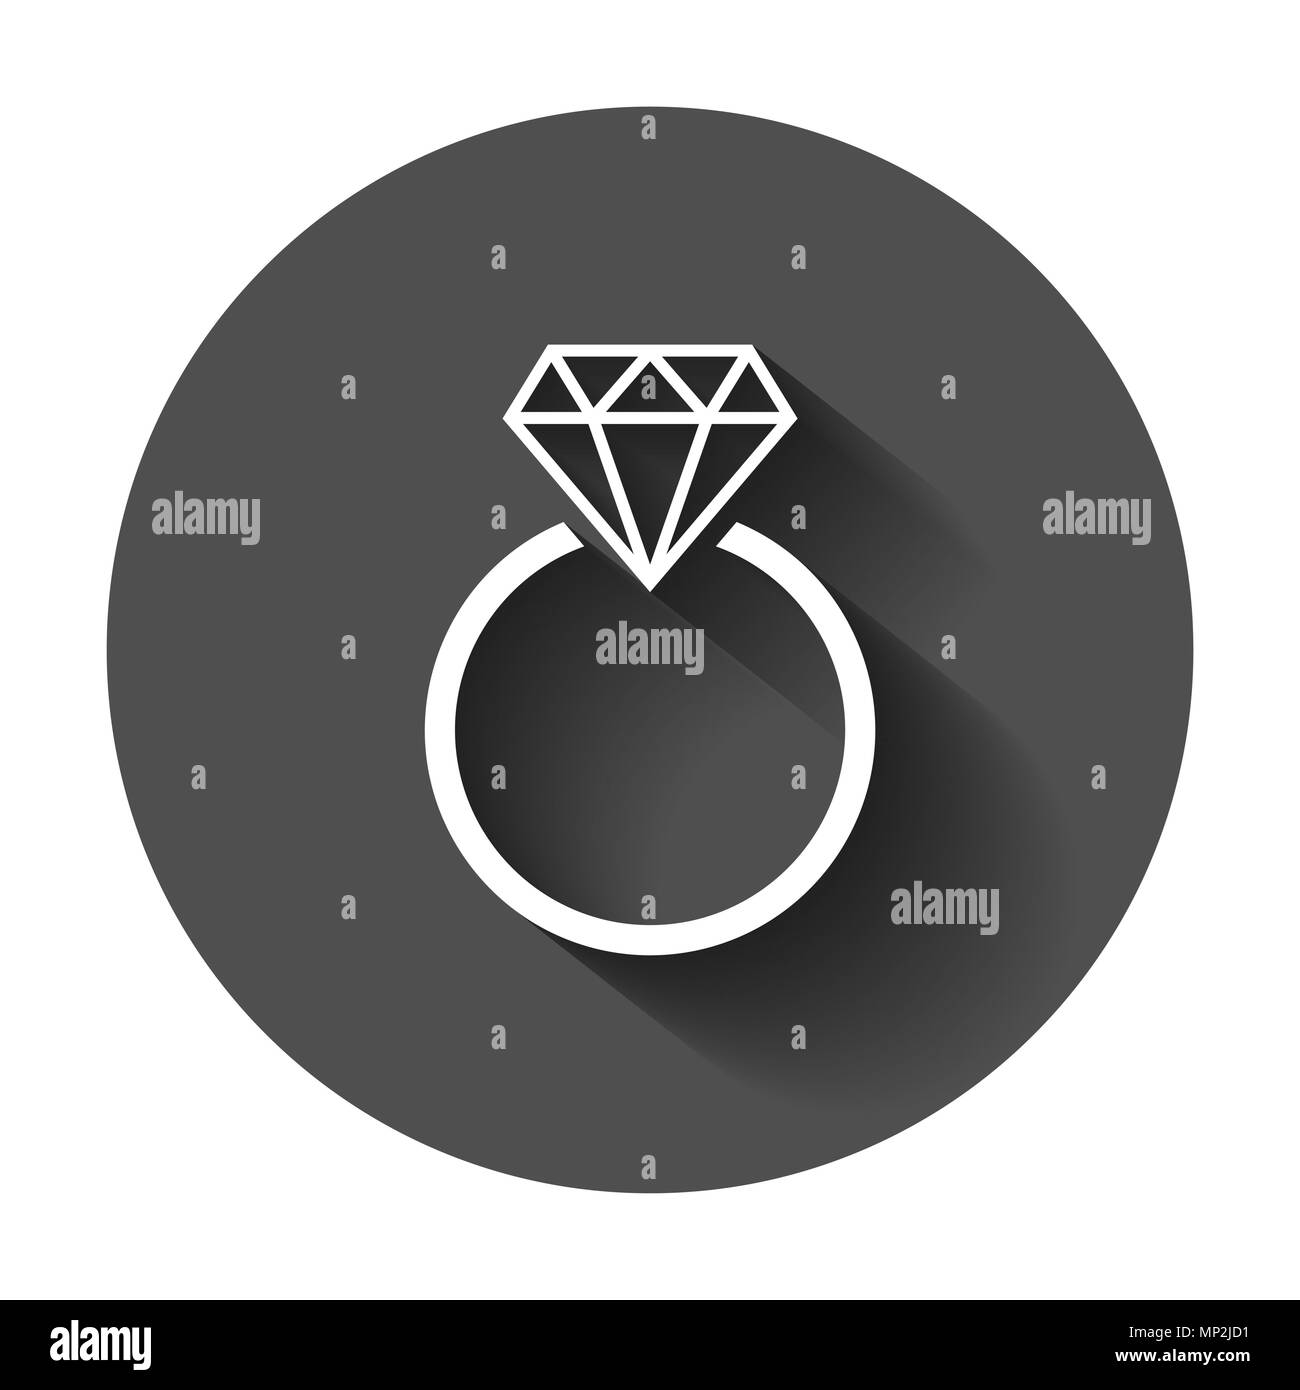 Engagement ring with diamond vector icon in flat style. Wedding jewelery ring illustration with long shadow. Romance relationship concept. - Stock Image